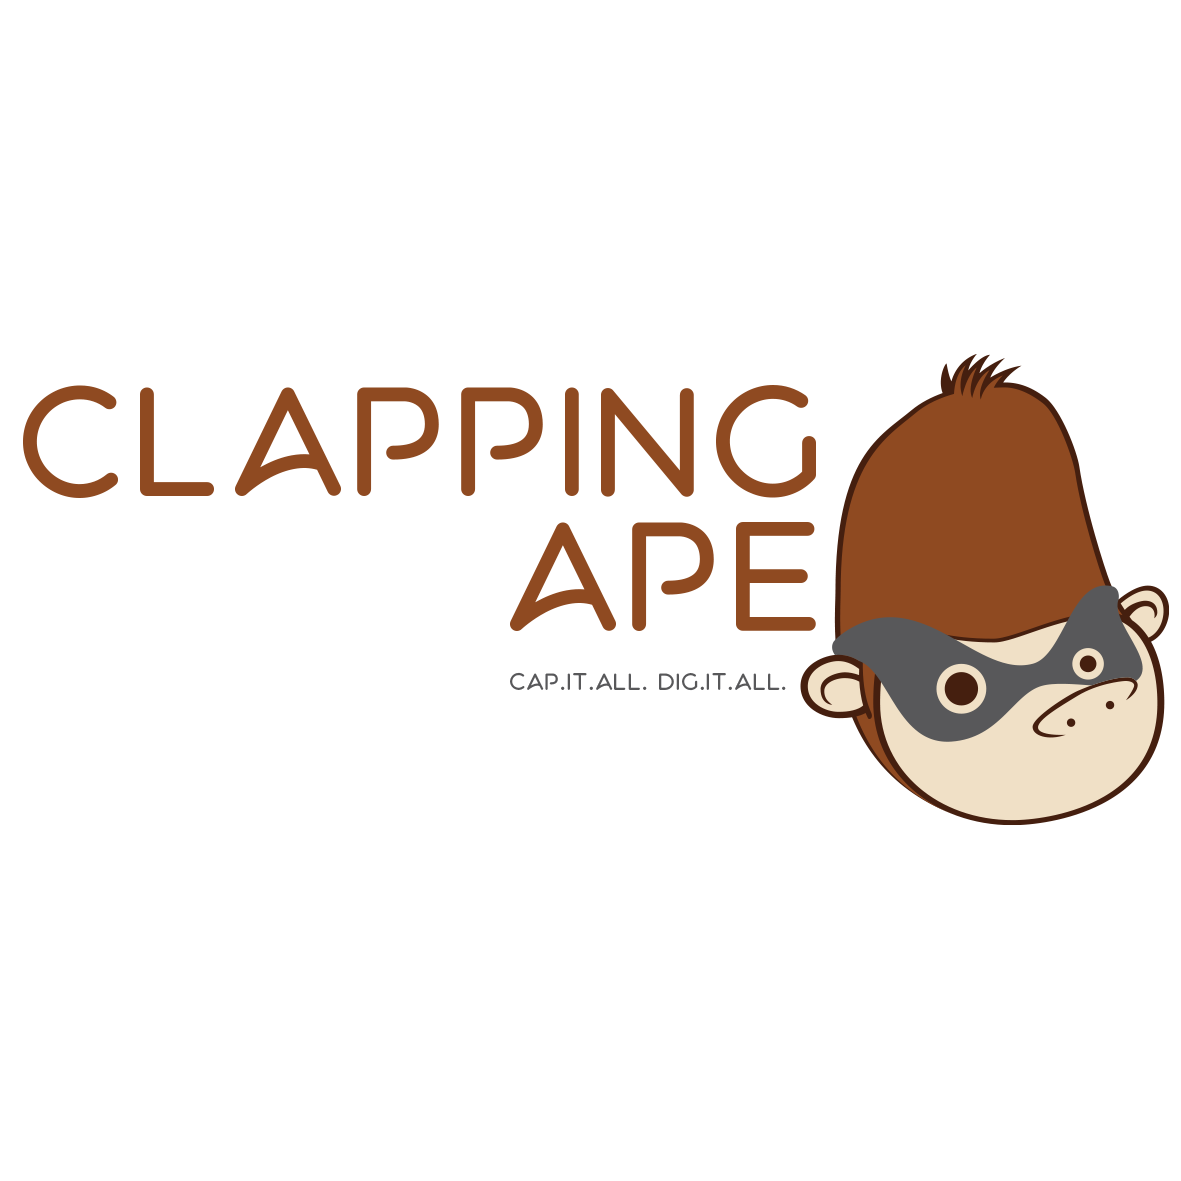 Clapping Ape | ruby on rails jobs in Indonesia | 41studio ruby on rails company